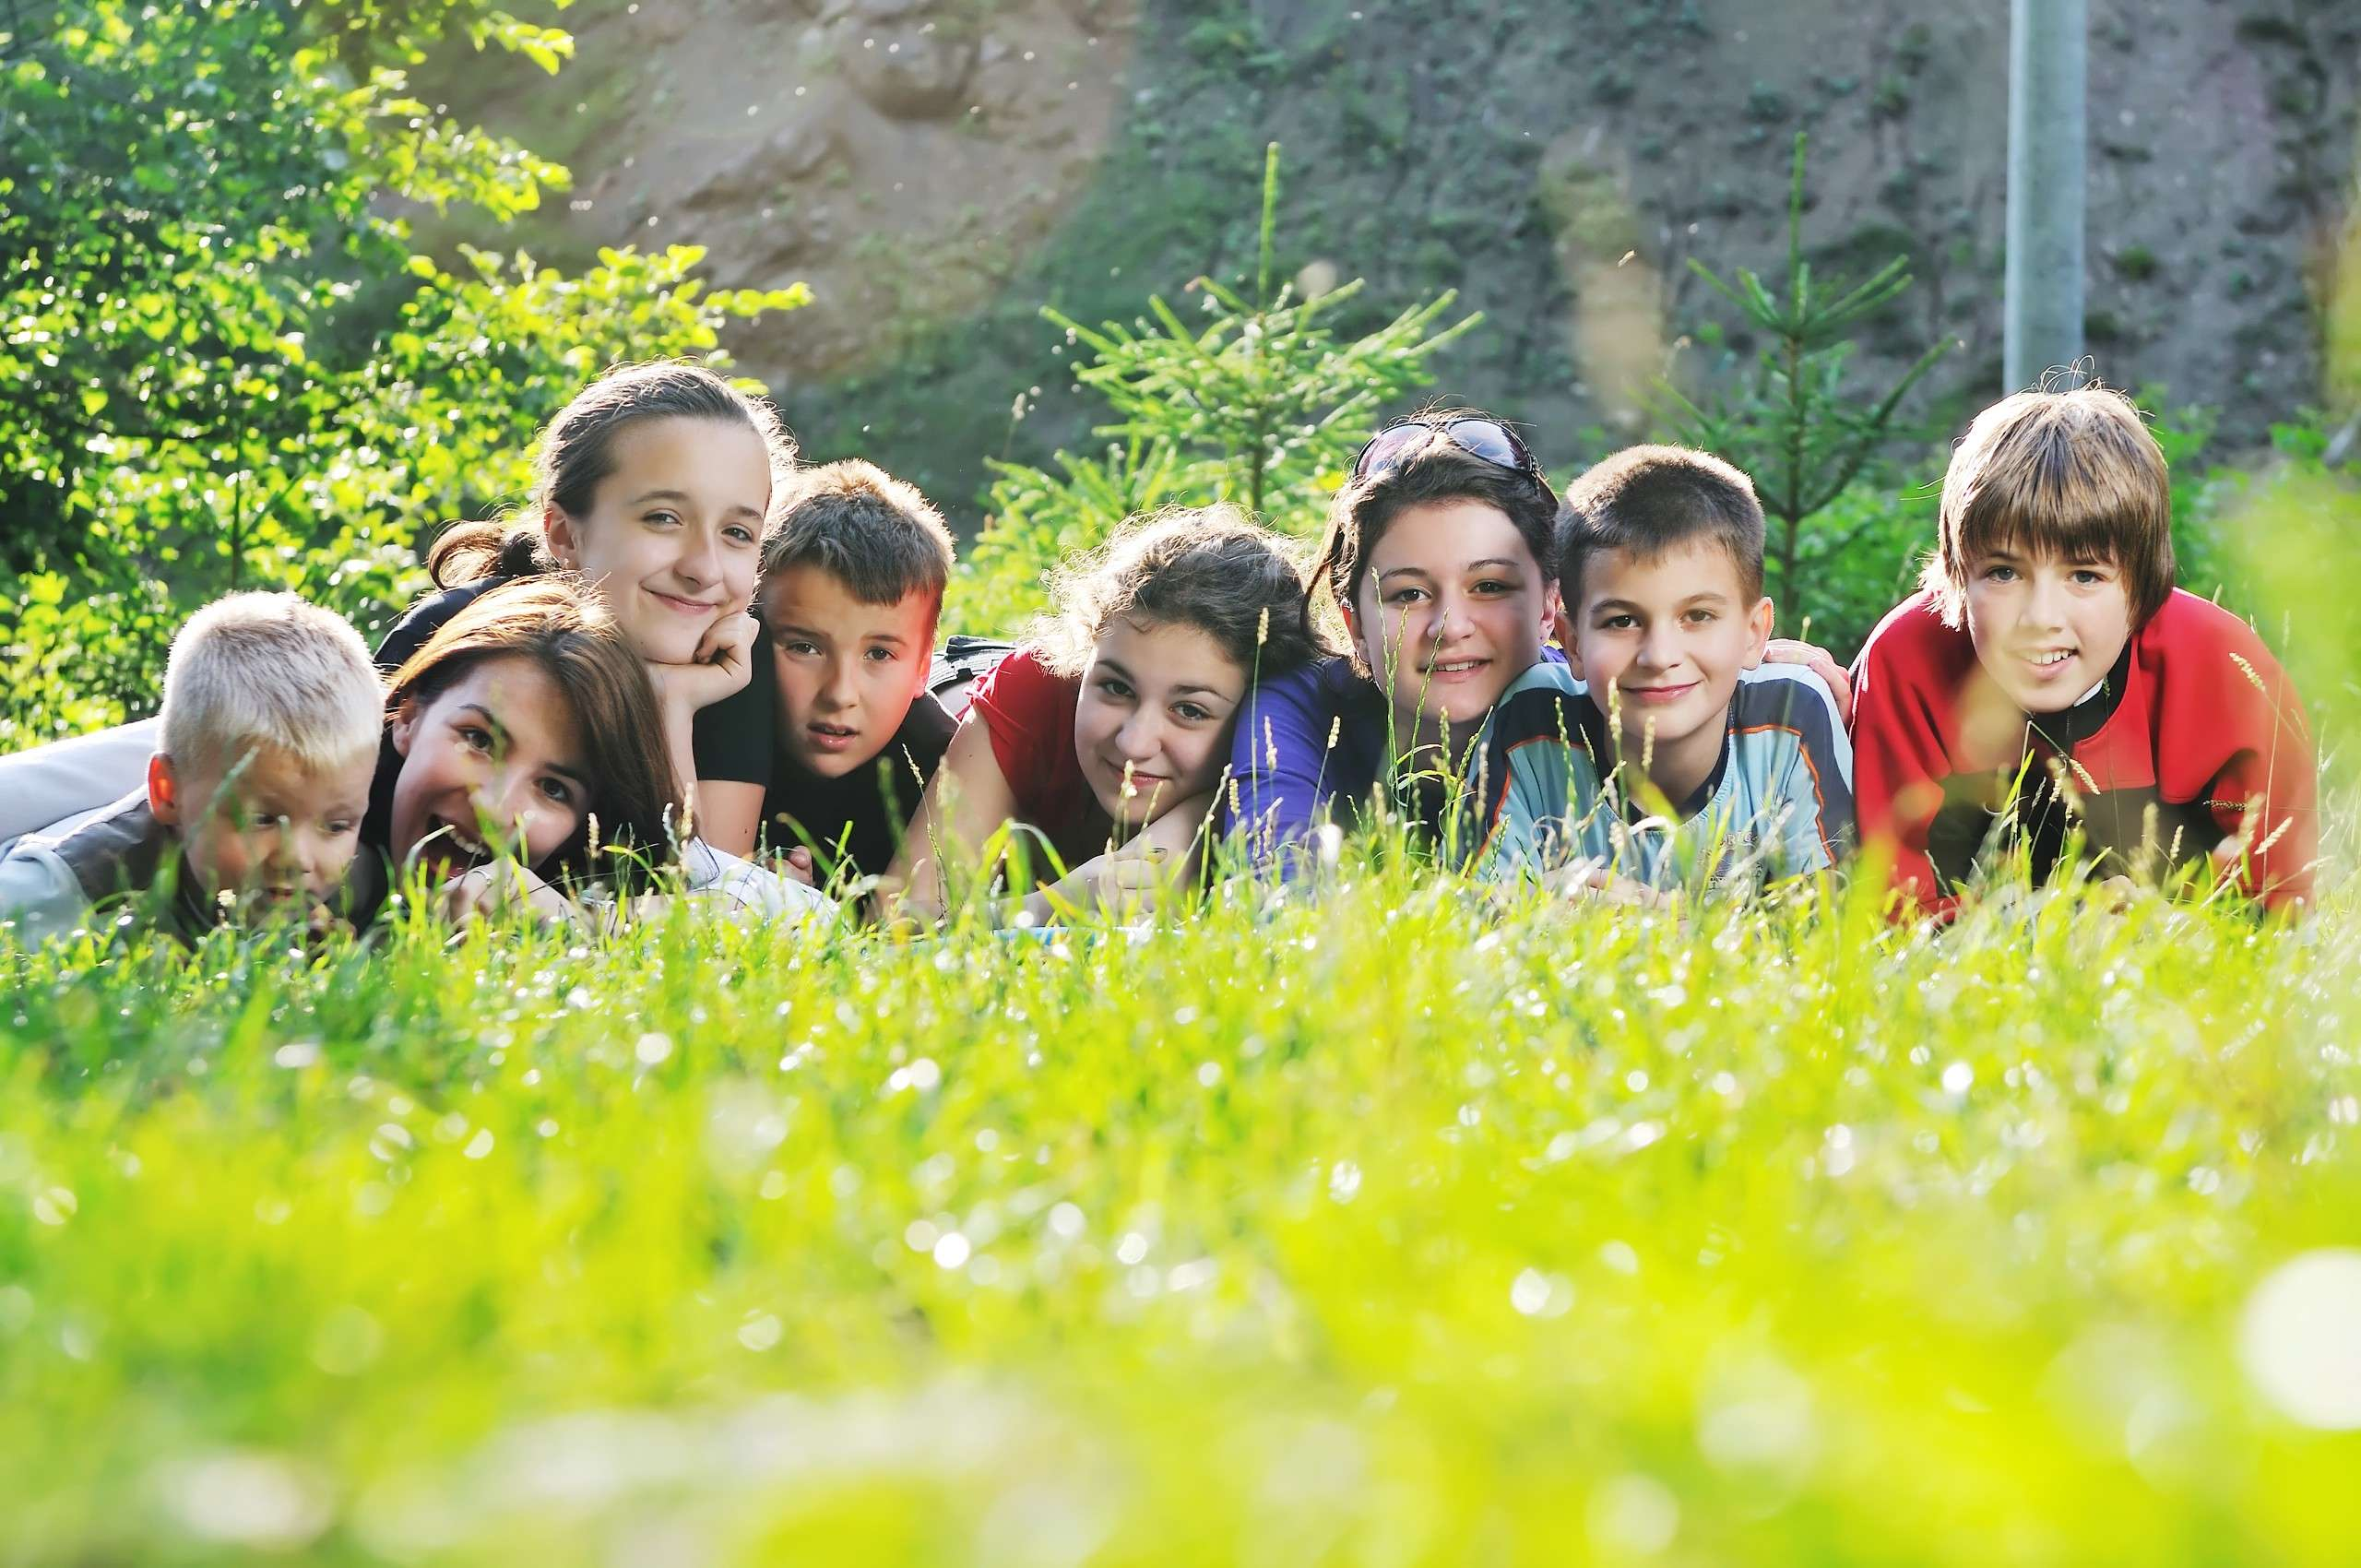 happy children group have fun outdoor in nature at suny day